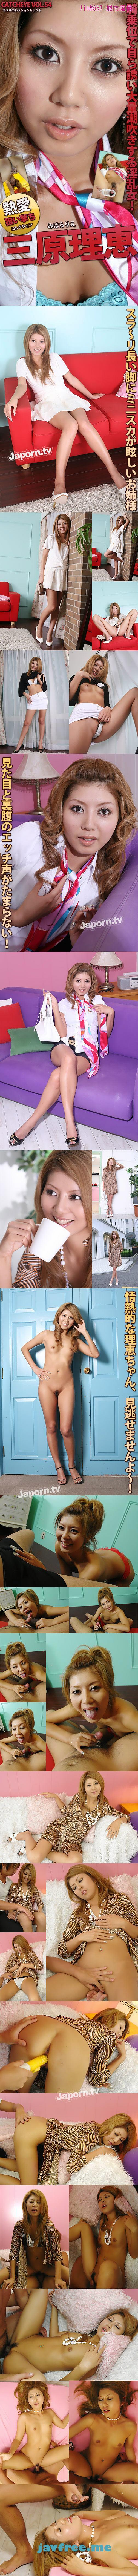 [DRC 054] CATCHEYE Vol.54 ~Model Collection Select~ : Rie Mihara 三原理恵 Rie Mihara DRC